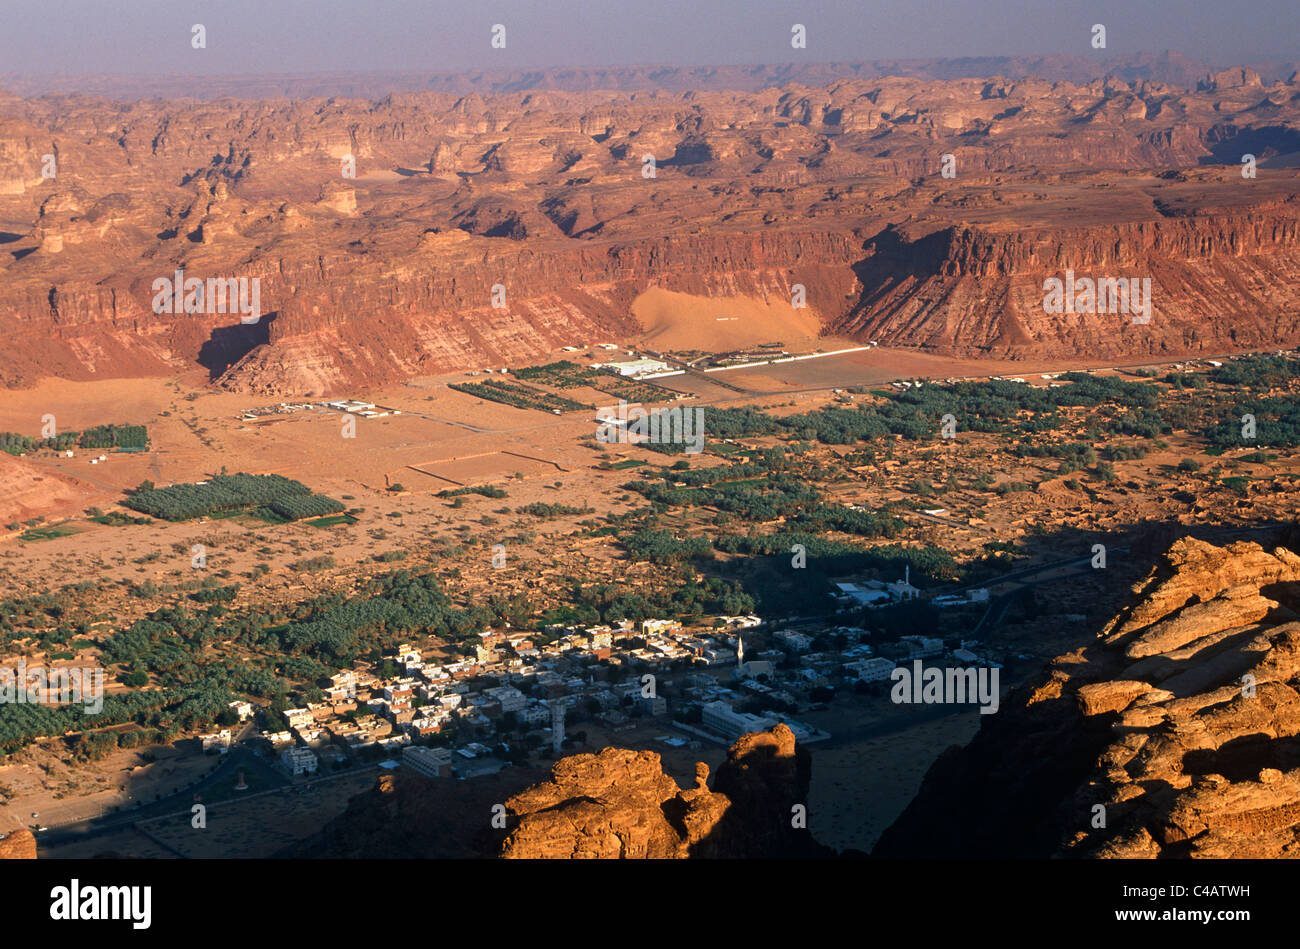 Saudi Arabia, Madinah, Al-Ula. A view of the town and oasis of Al-Ula from the surrounding hills. - Stock Image